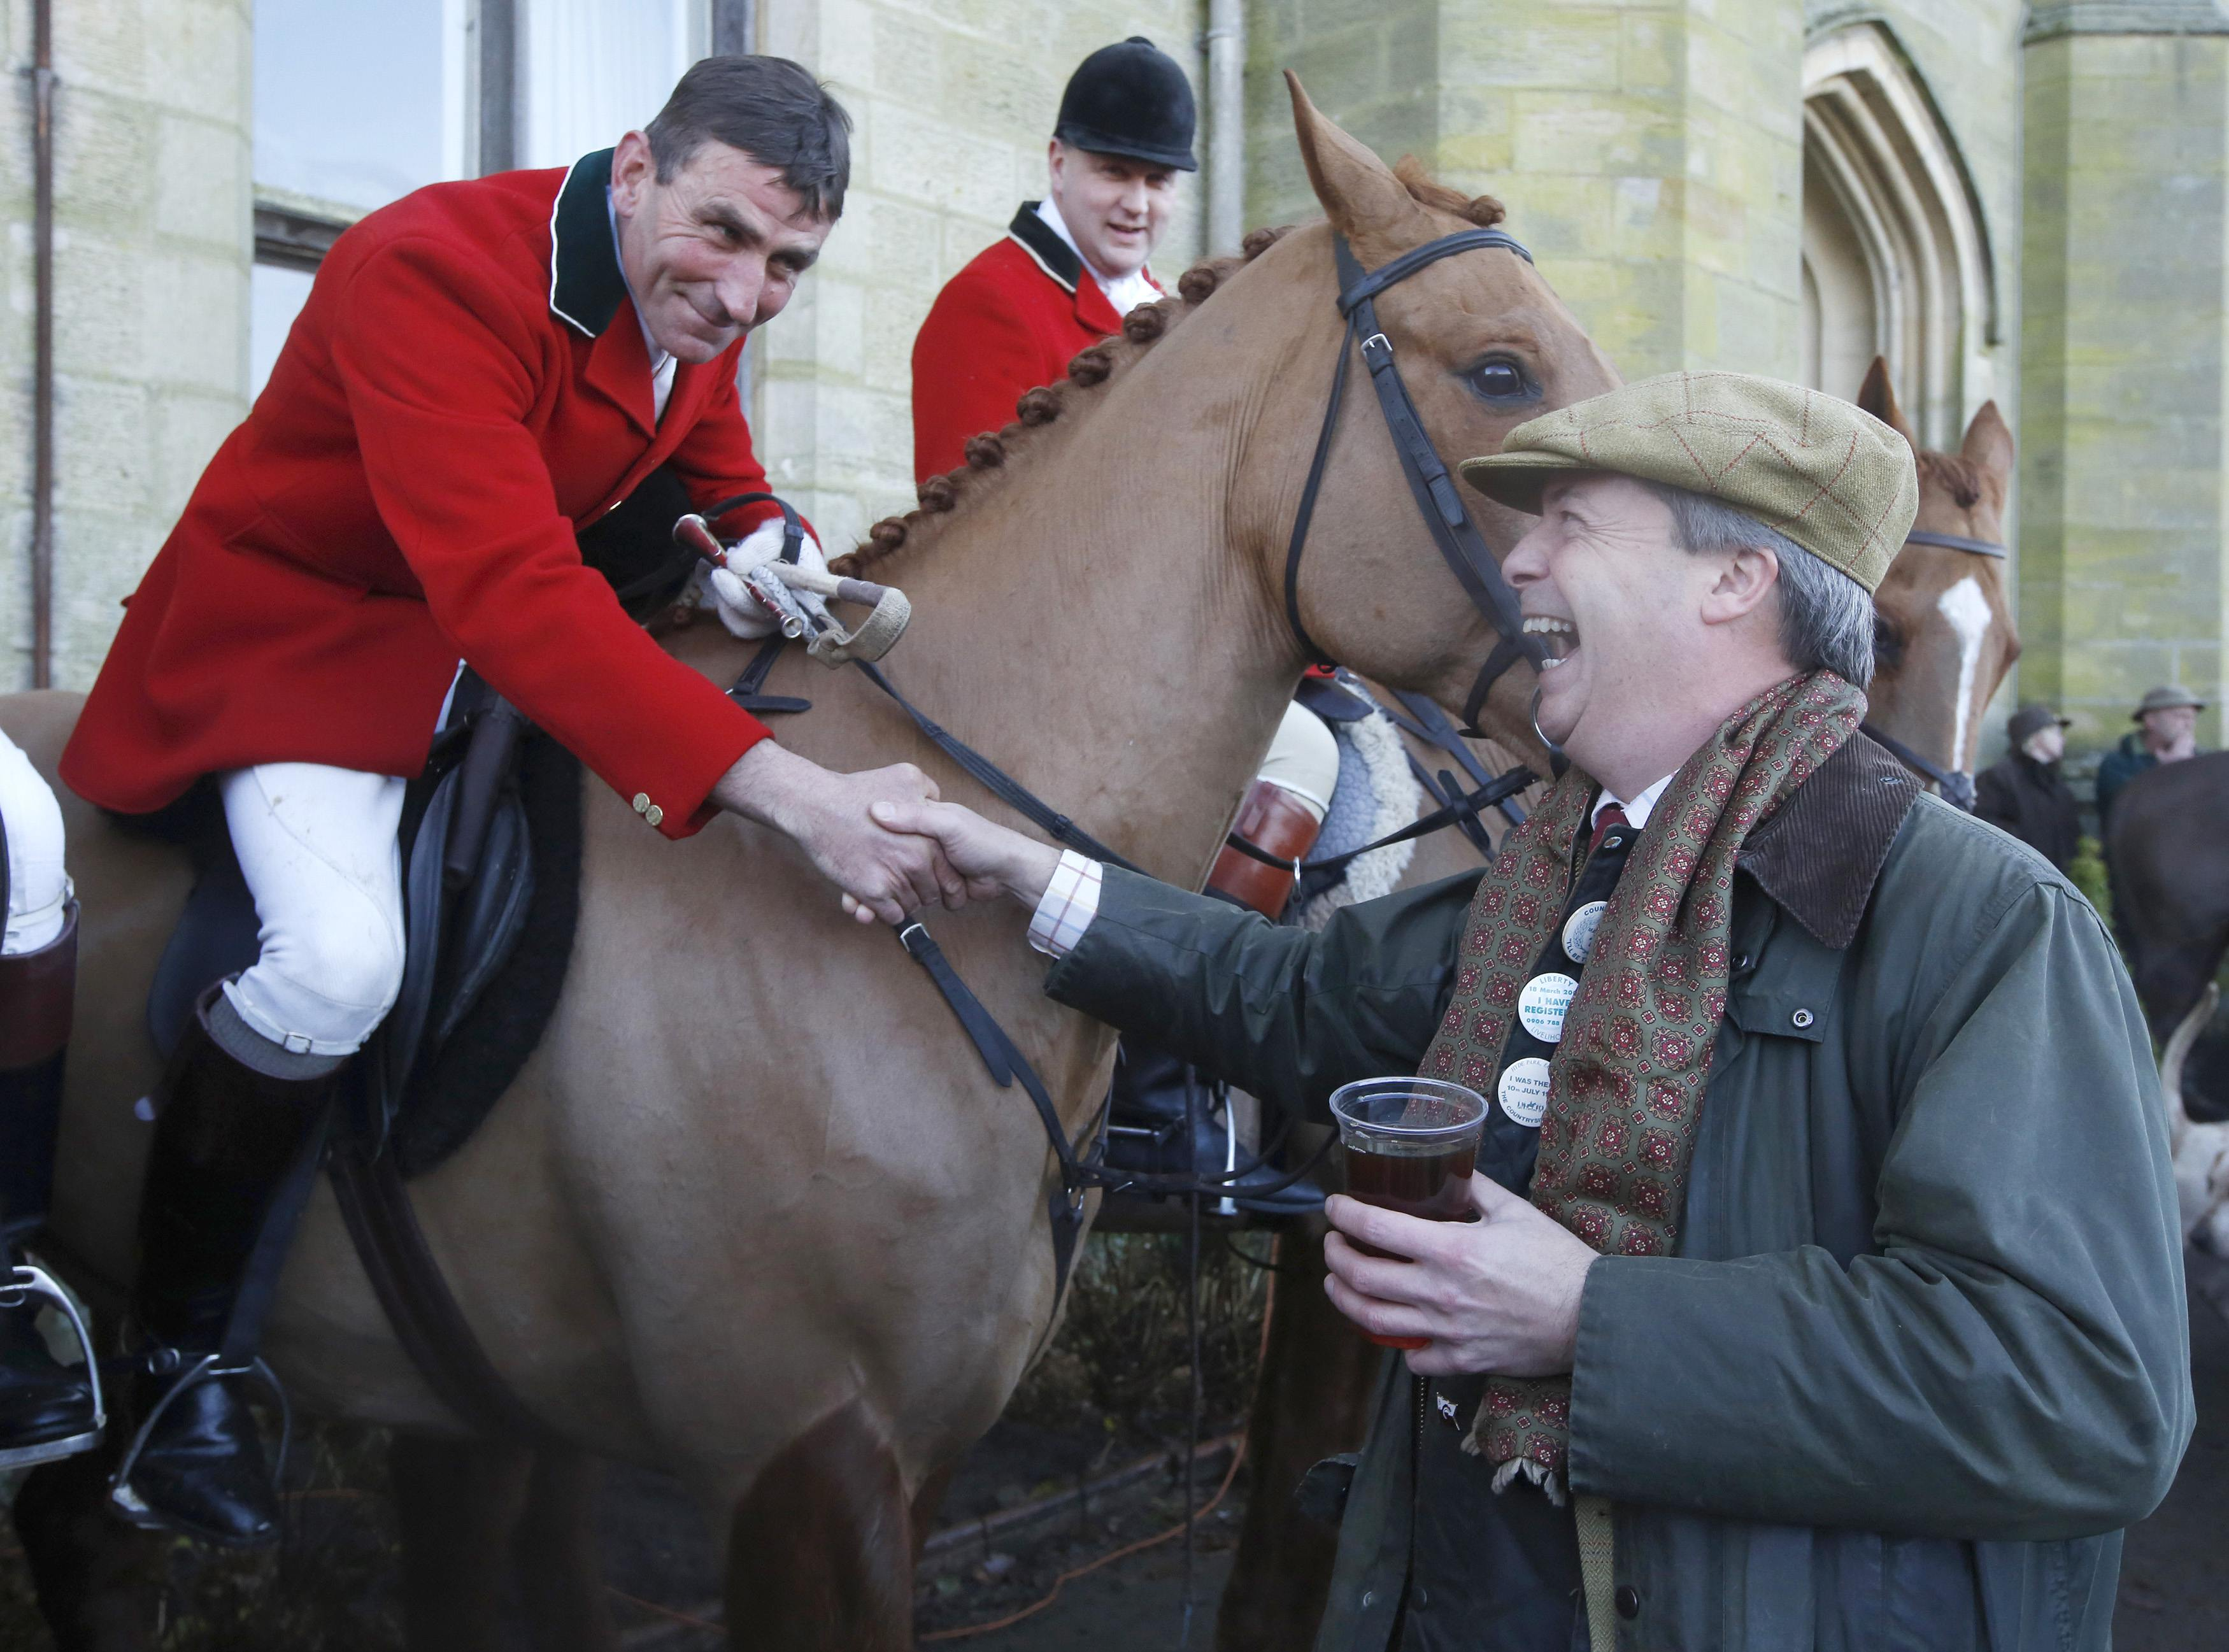 UK Independence Party leader Nigel Farage shakes hands with huntsman Mark Bycroft of the Old Surrey Burstow and West Kent Hunt before they departed from Chiddingstone Castle for the annual Boxing Day hunt in Chiddingstone, south east England